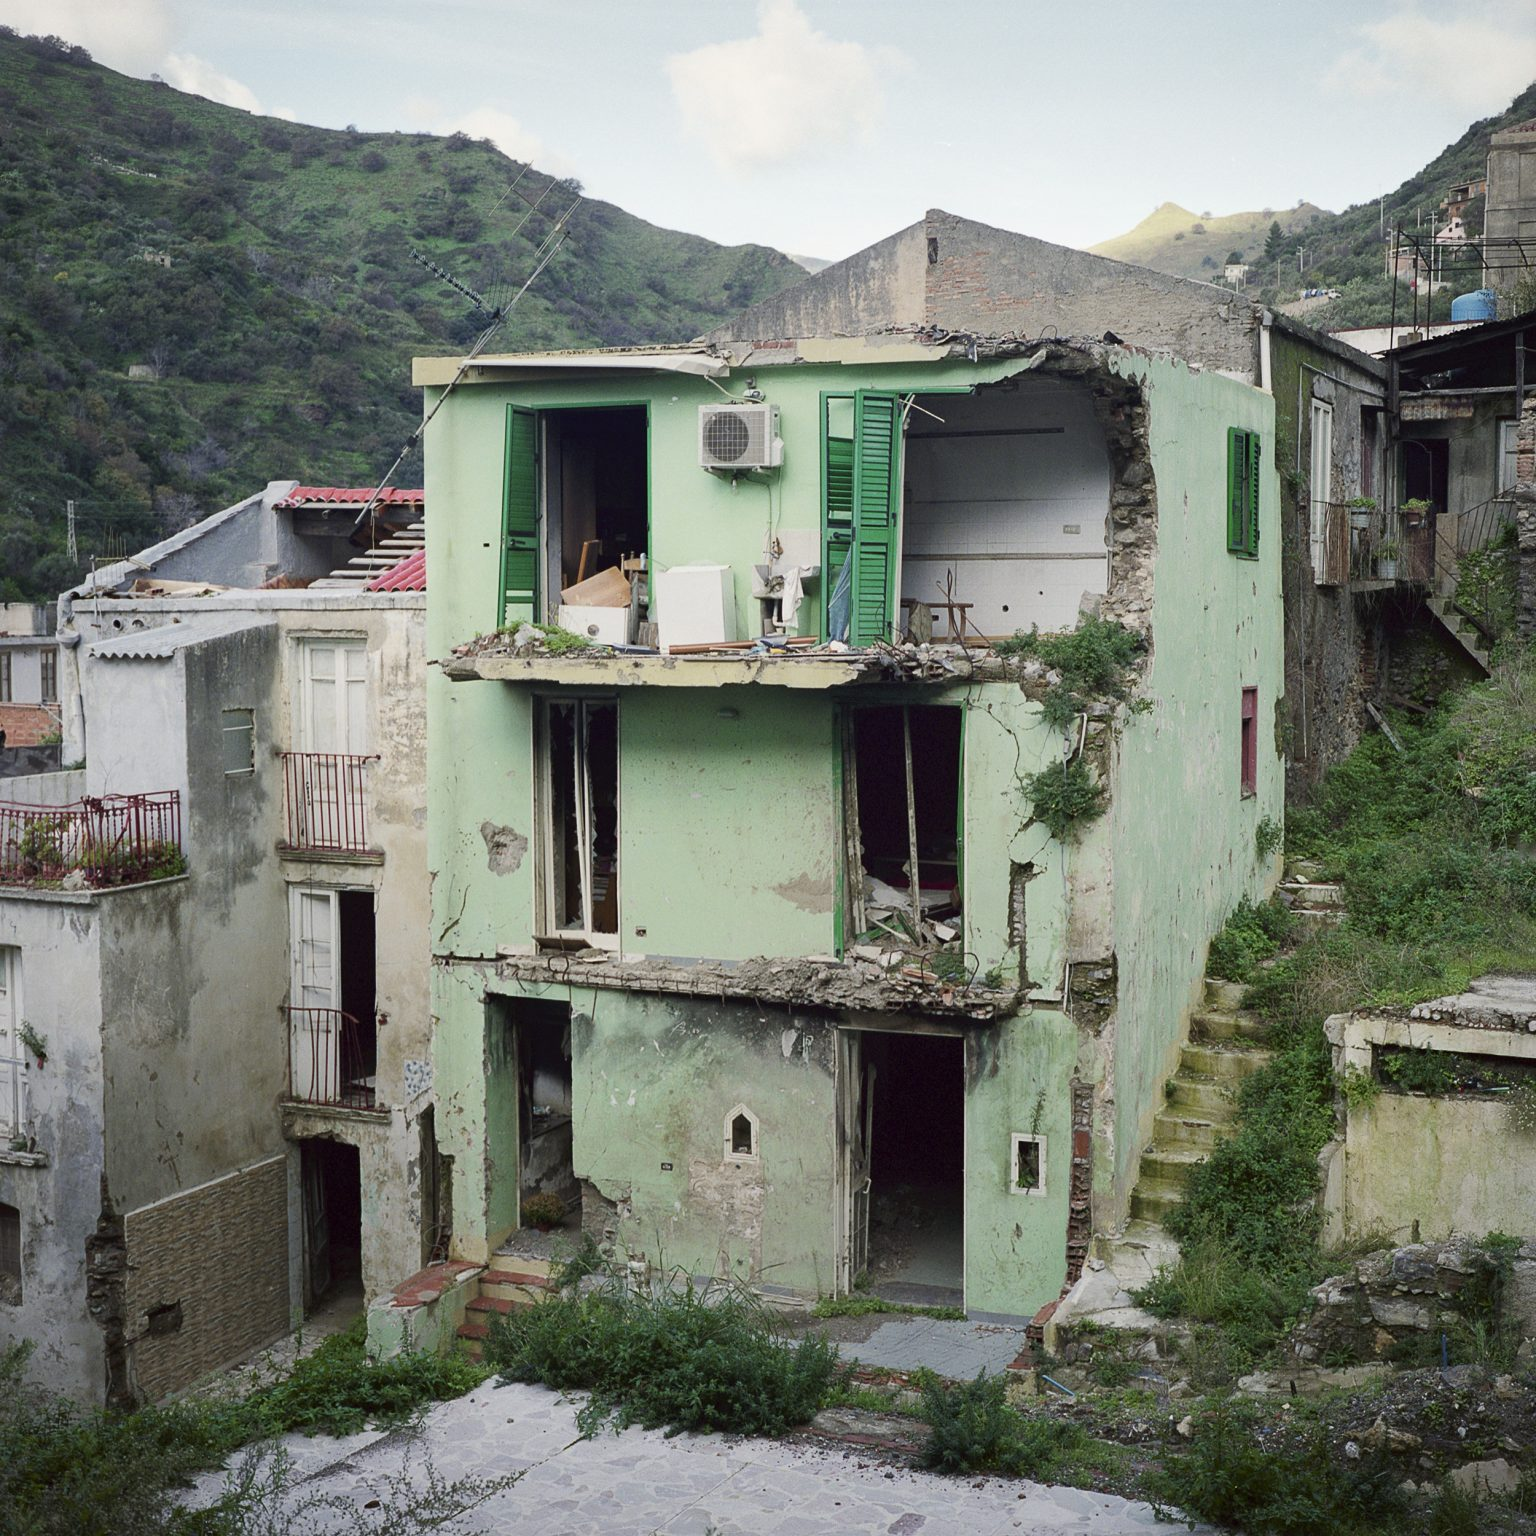 Giampilieri Superiore, December 2011. The area hit by the landslide of October 2009, now a ghost town, left in the same conditions. The damages in the area where huge, and the amount of deaths got to 37 people, including several children.